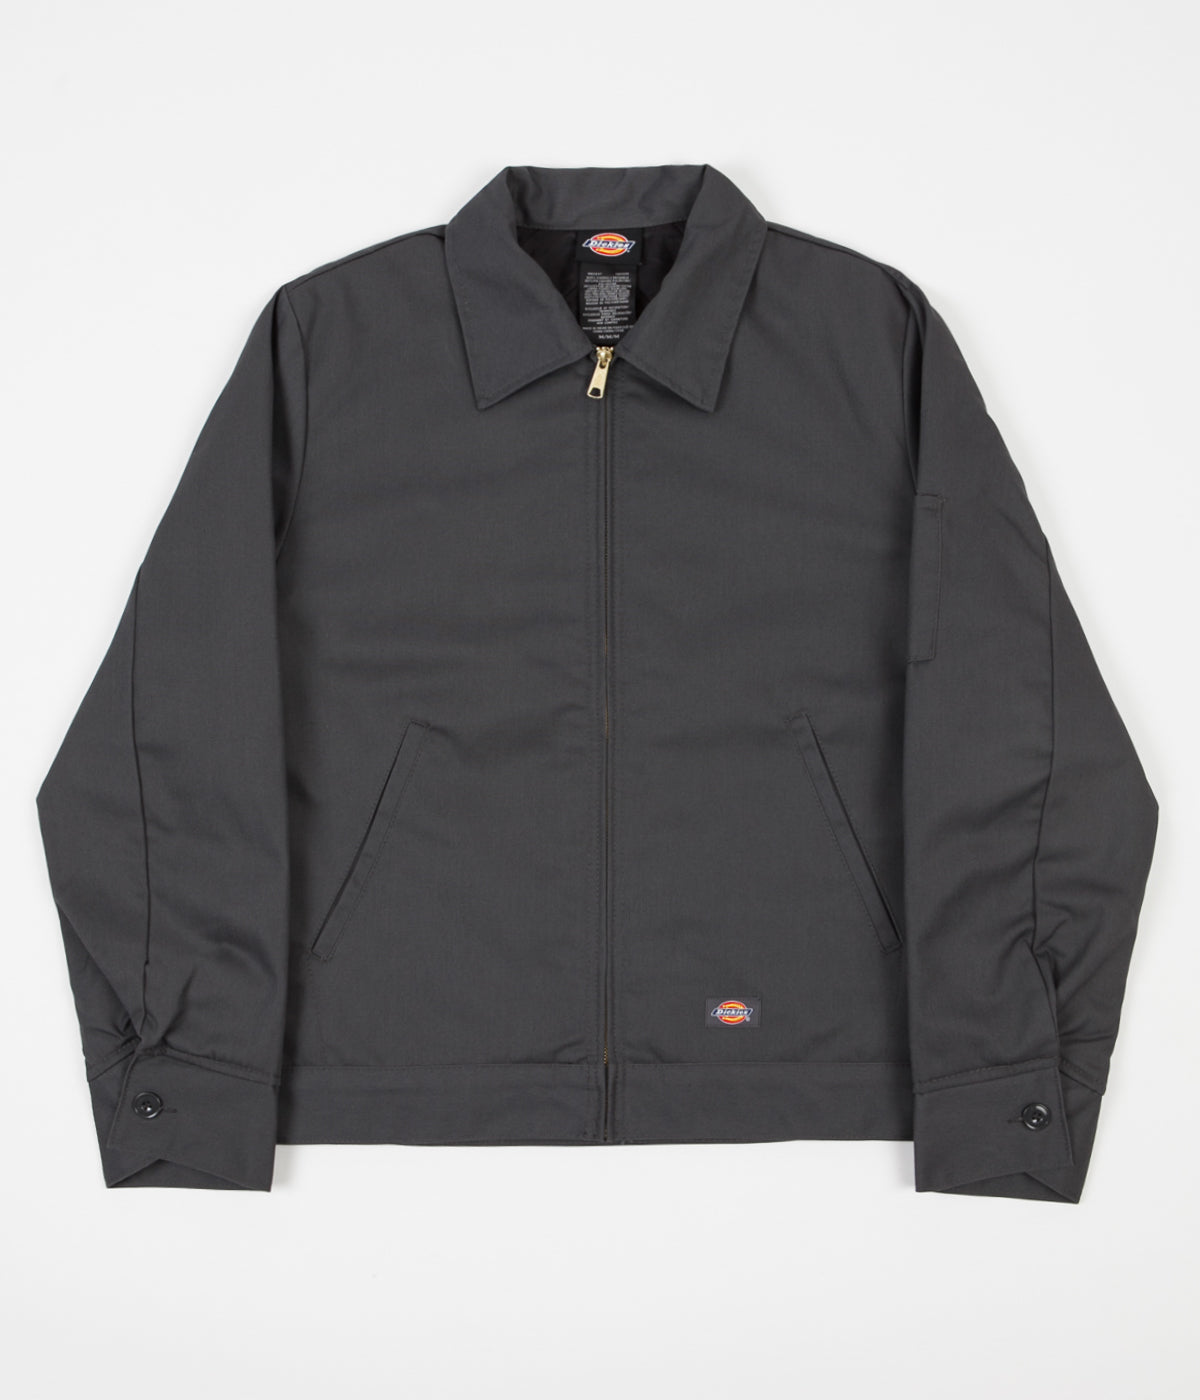 Dickies Lined Eisenhower Jacket - Charcoal Grey